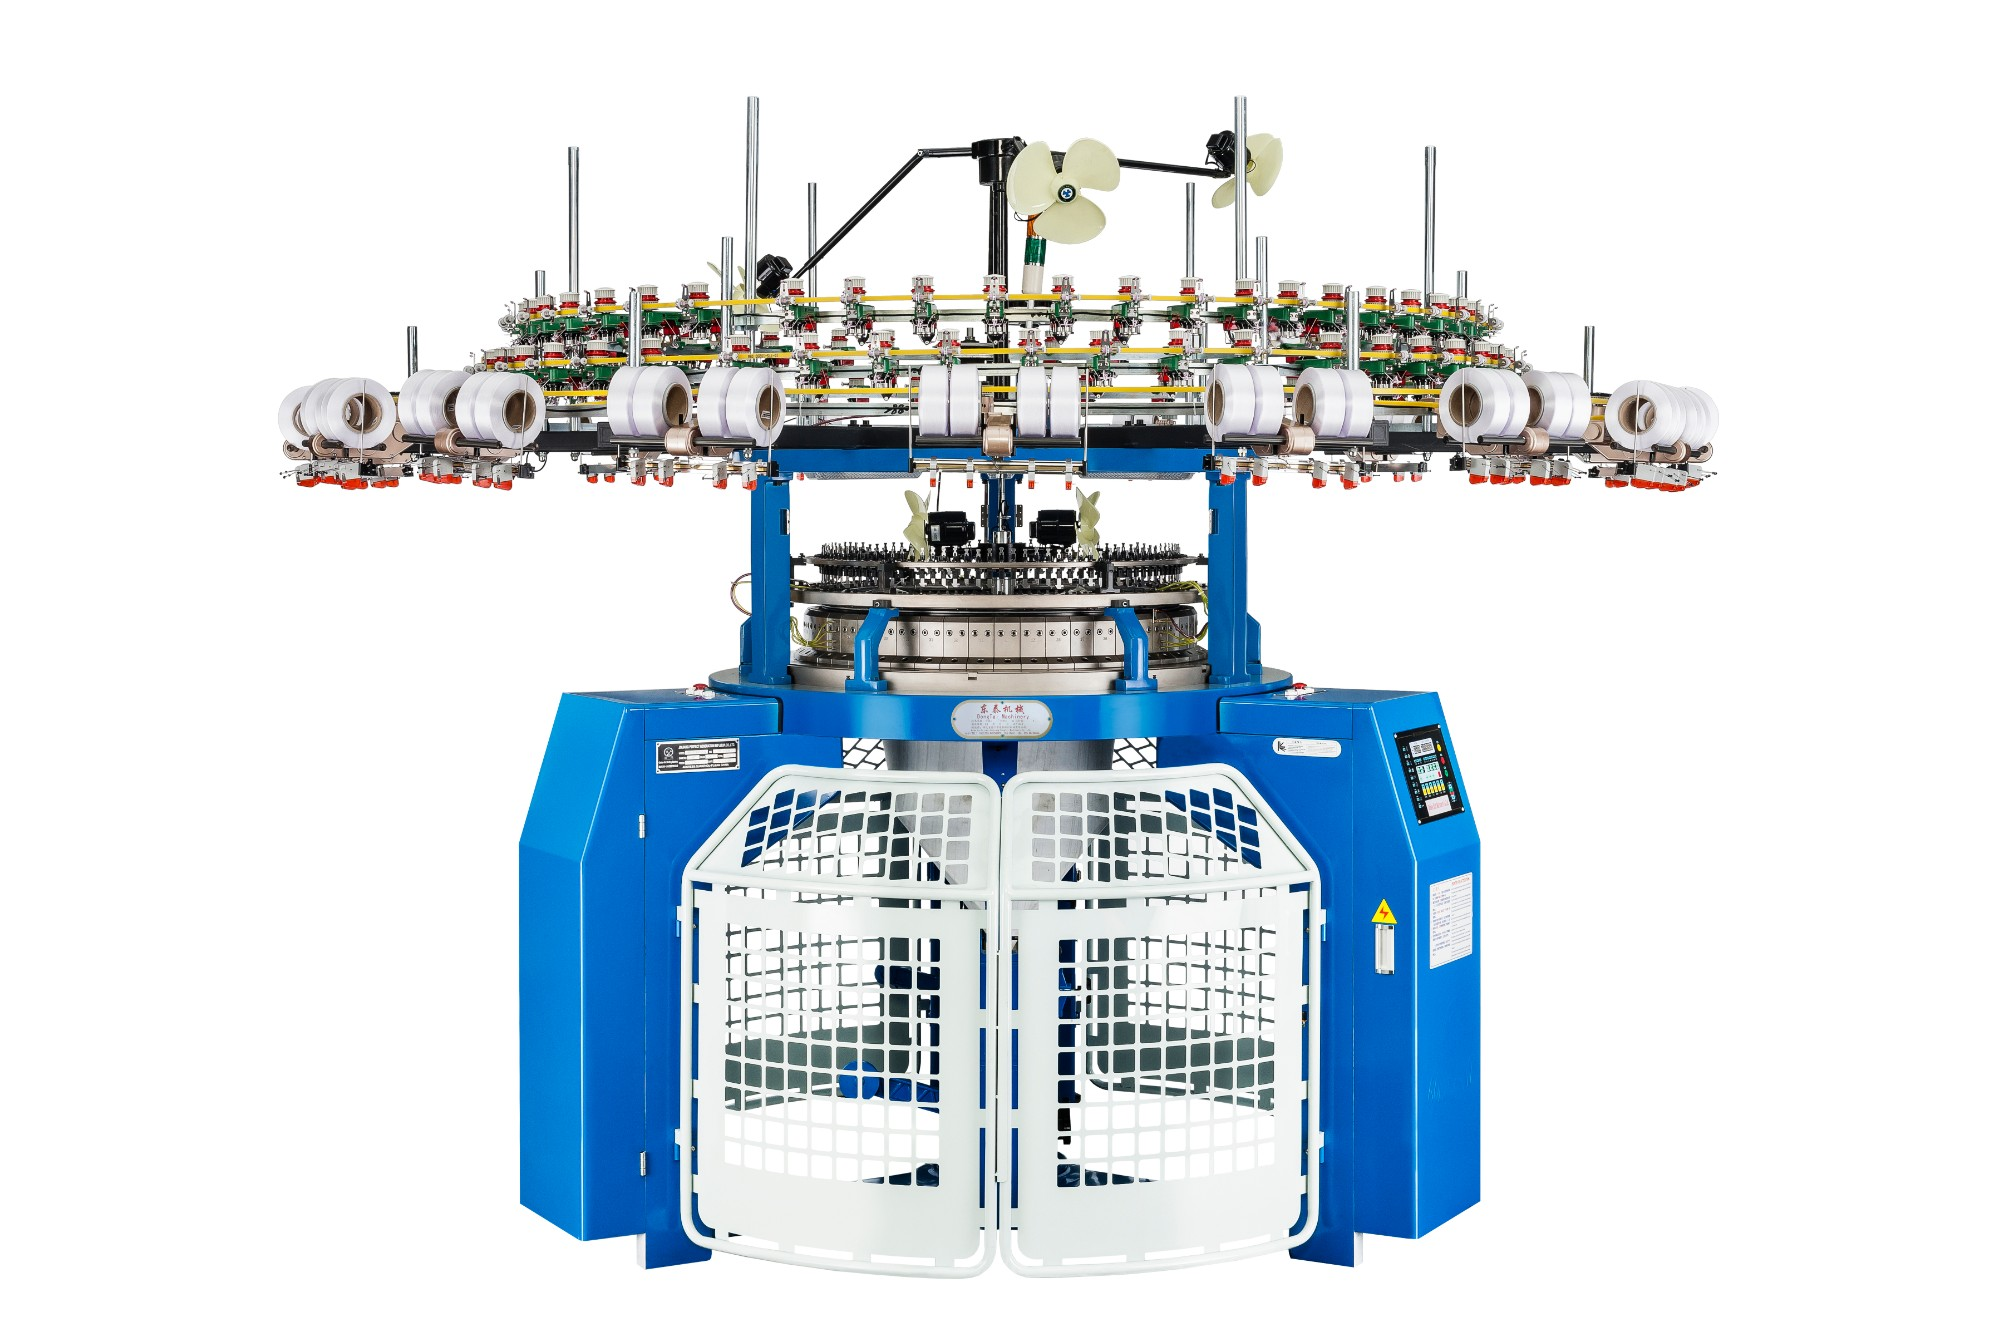 Circular Weft Knitting Machine Manufacturers, Circular Weft Knitting Machine Factory, Supply Circular Weft Knitting Machine